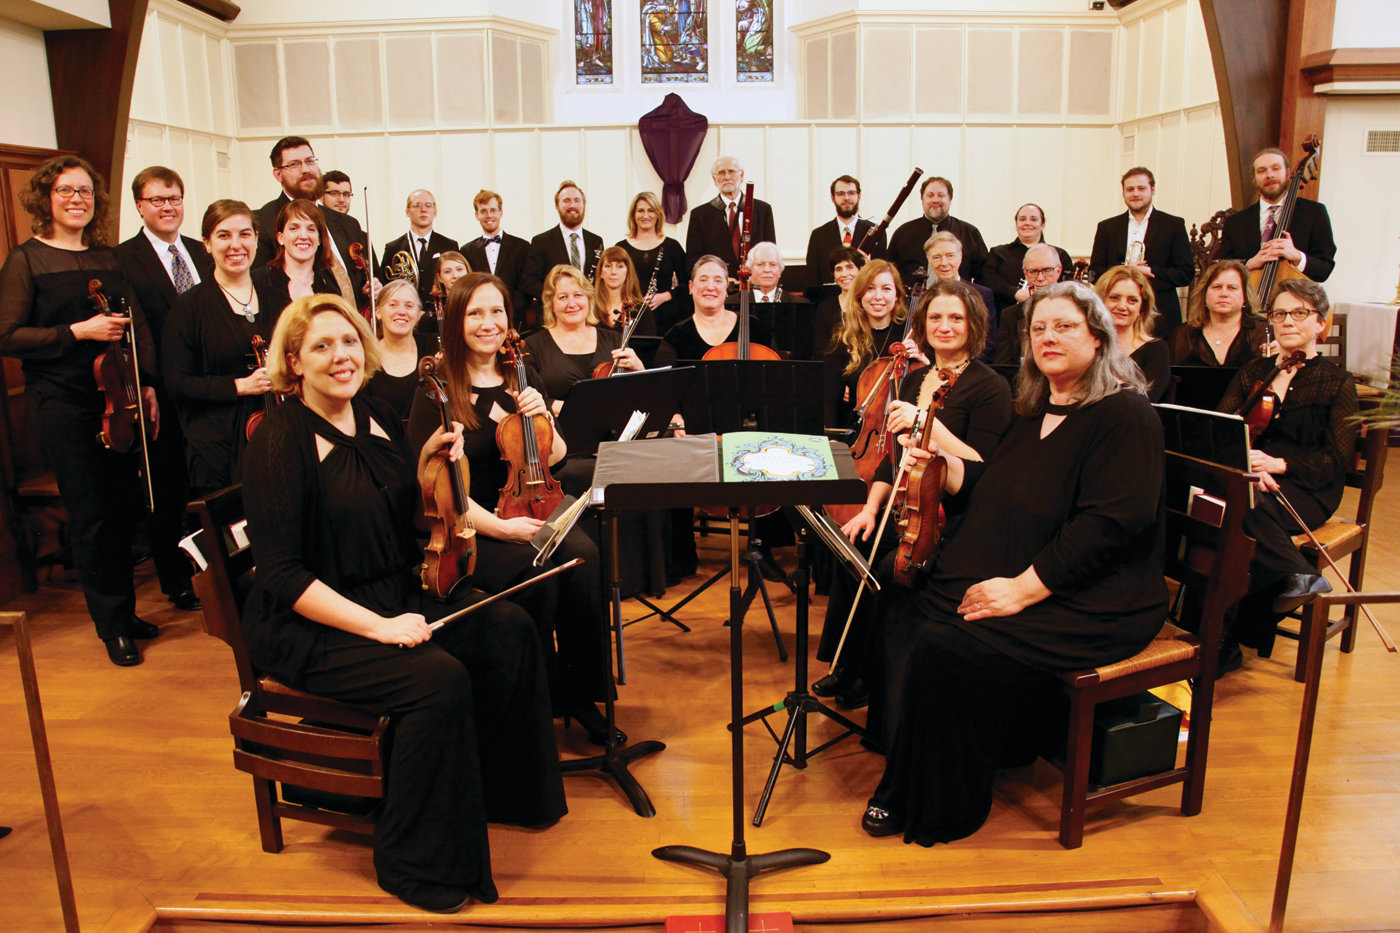 CLASSICAL SOUNDS: The Chamber Orchestra of Barrington invites members of the community to attend its third concert of the season Feb. 17 at St. John's Episcopal Church in Barrington.